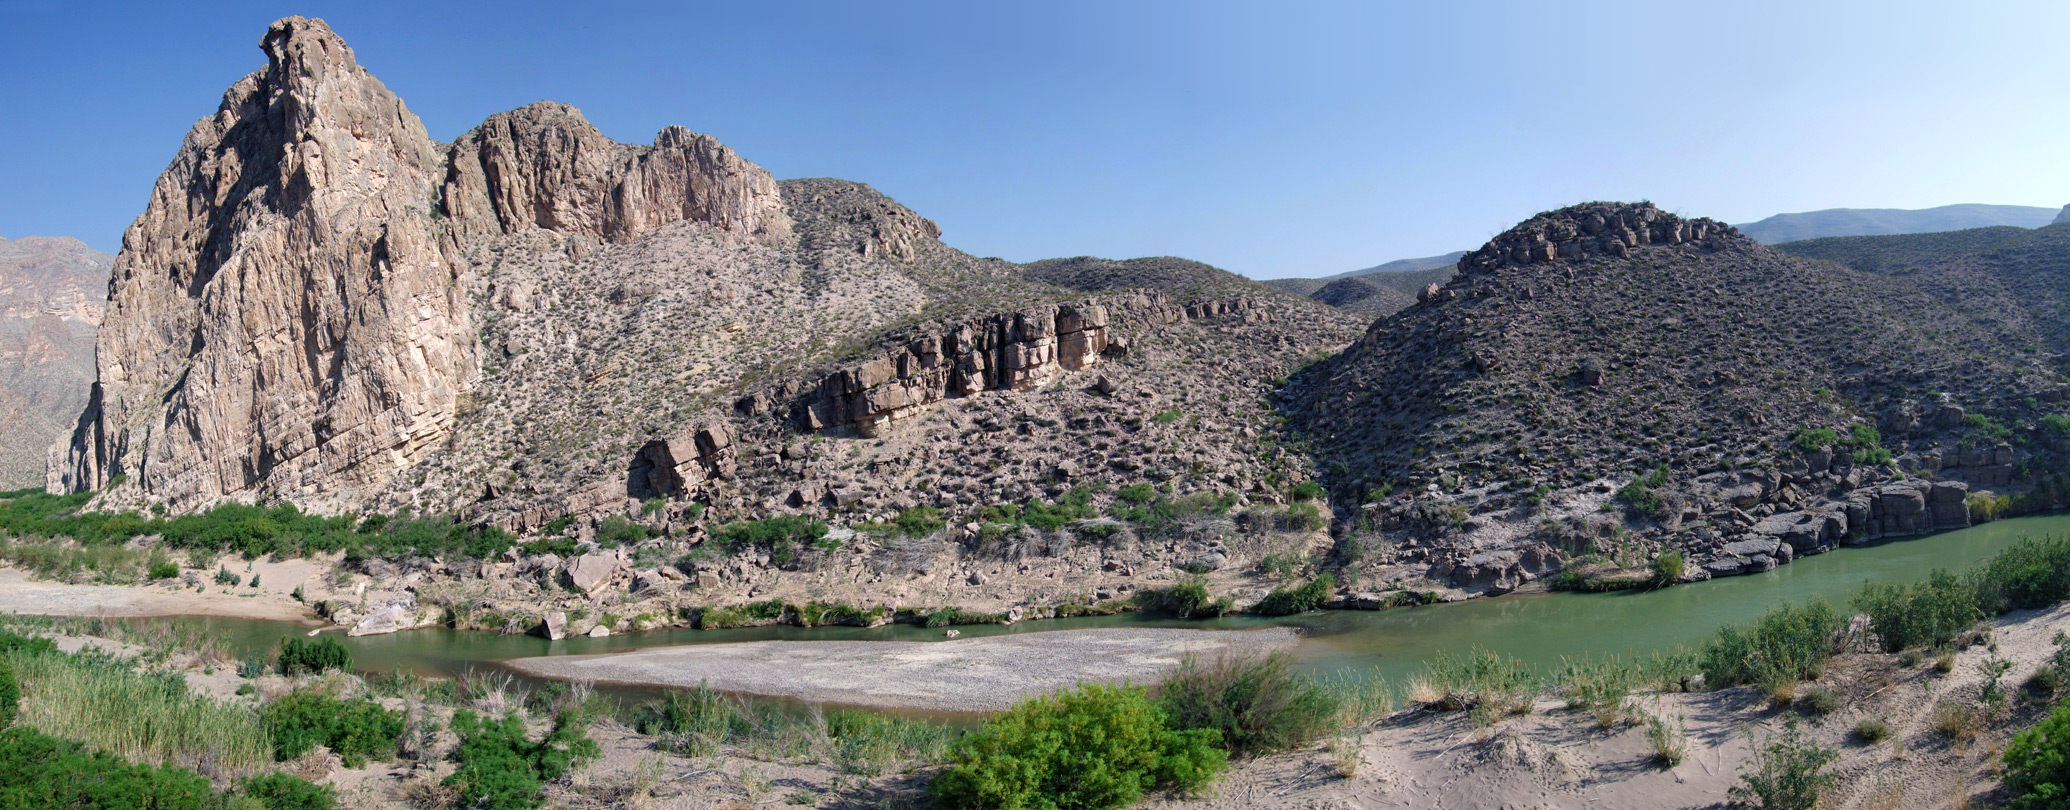 Bushes and sandbanks along the Rio Grande